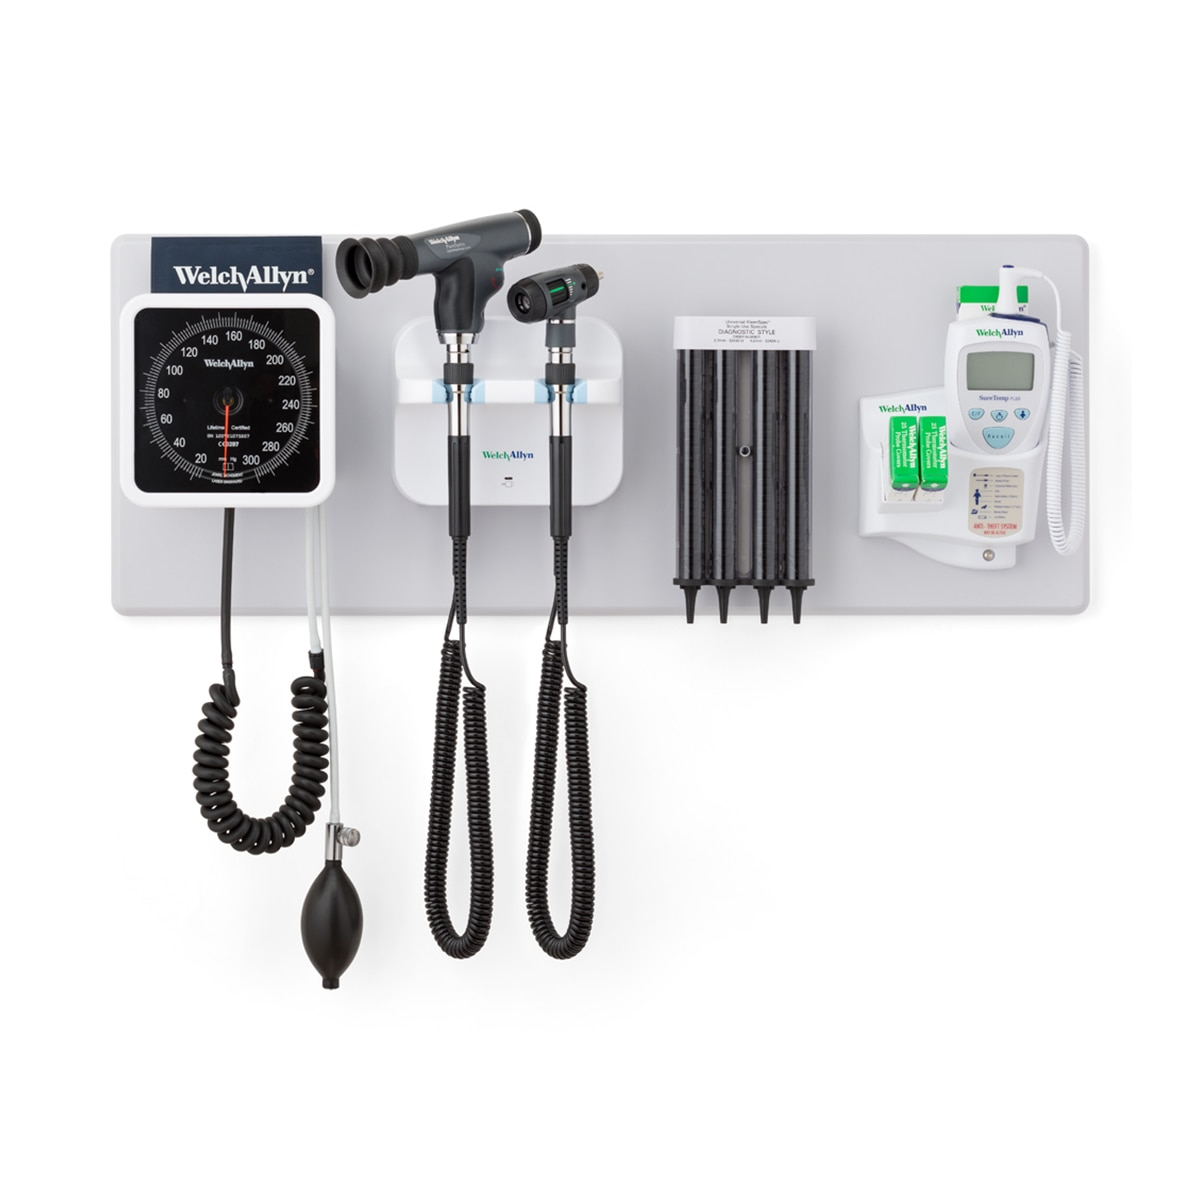 777 Integrated Wall System with BP gauge, otoscope, PanOptic ophthalmoscope, probe covers and SureTemp thermometer